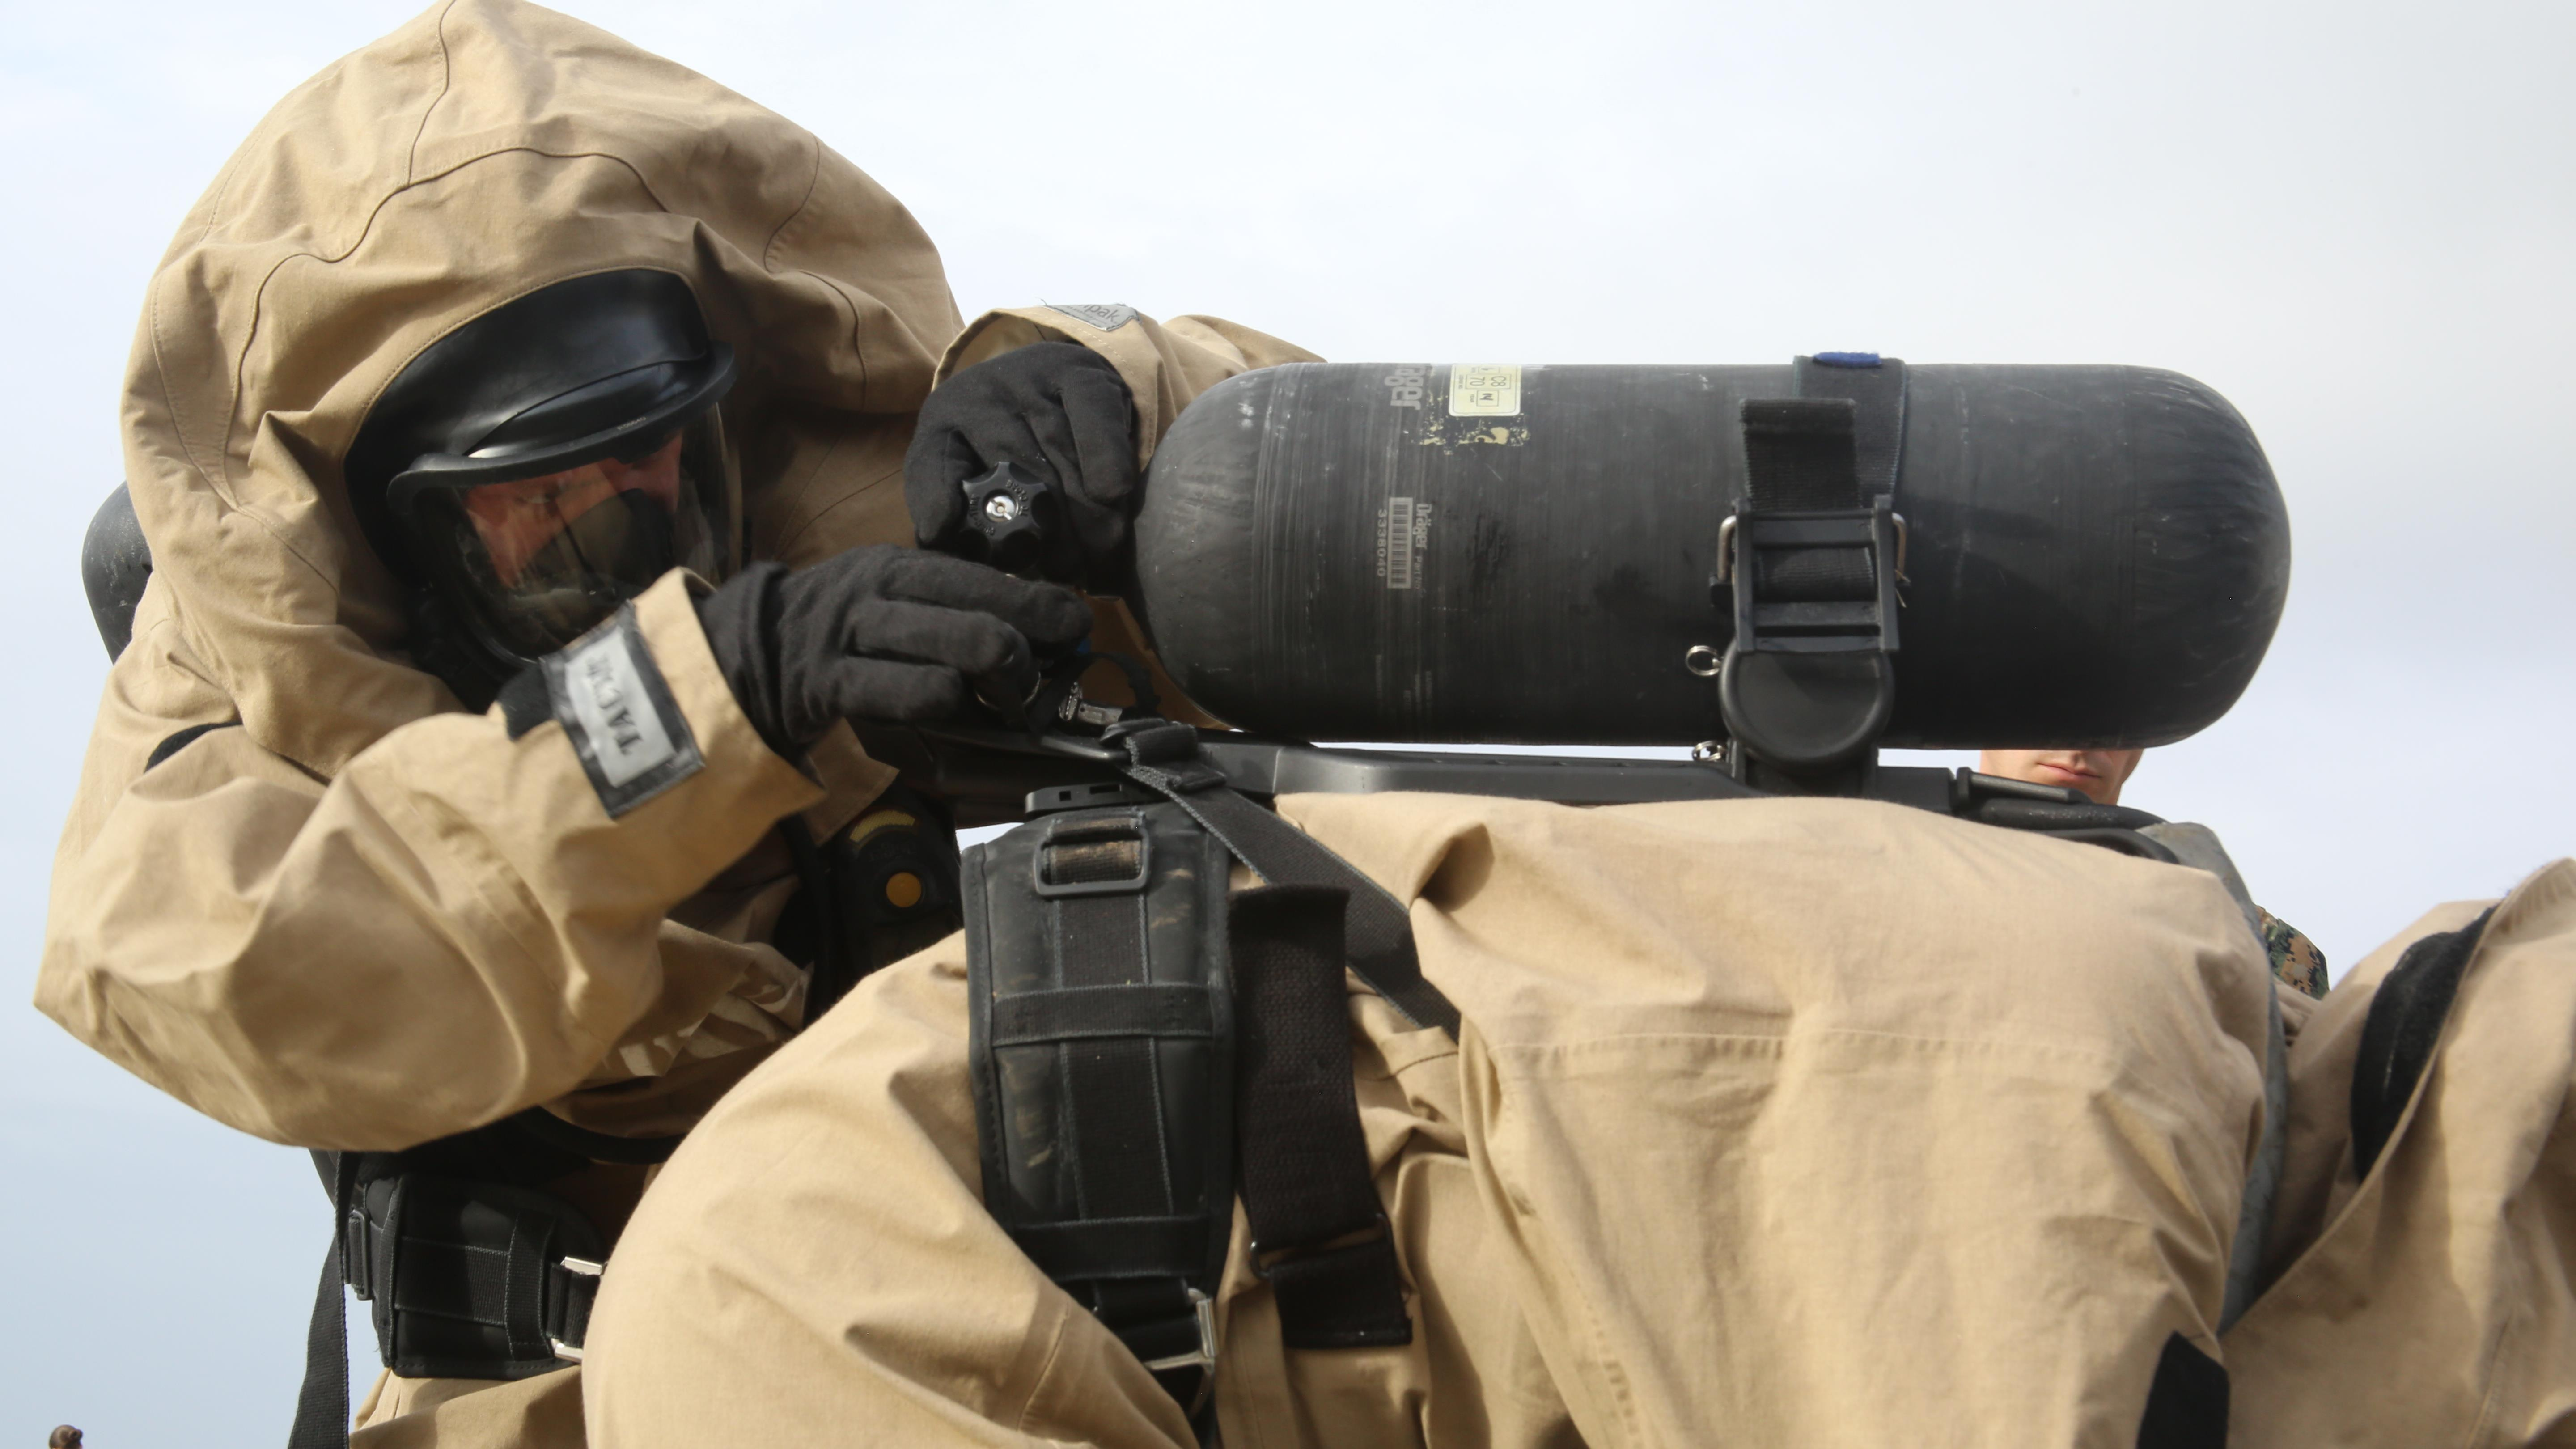 Behind the gas mask: CBRN Marines go back to roots of MOS training